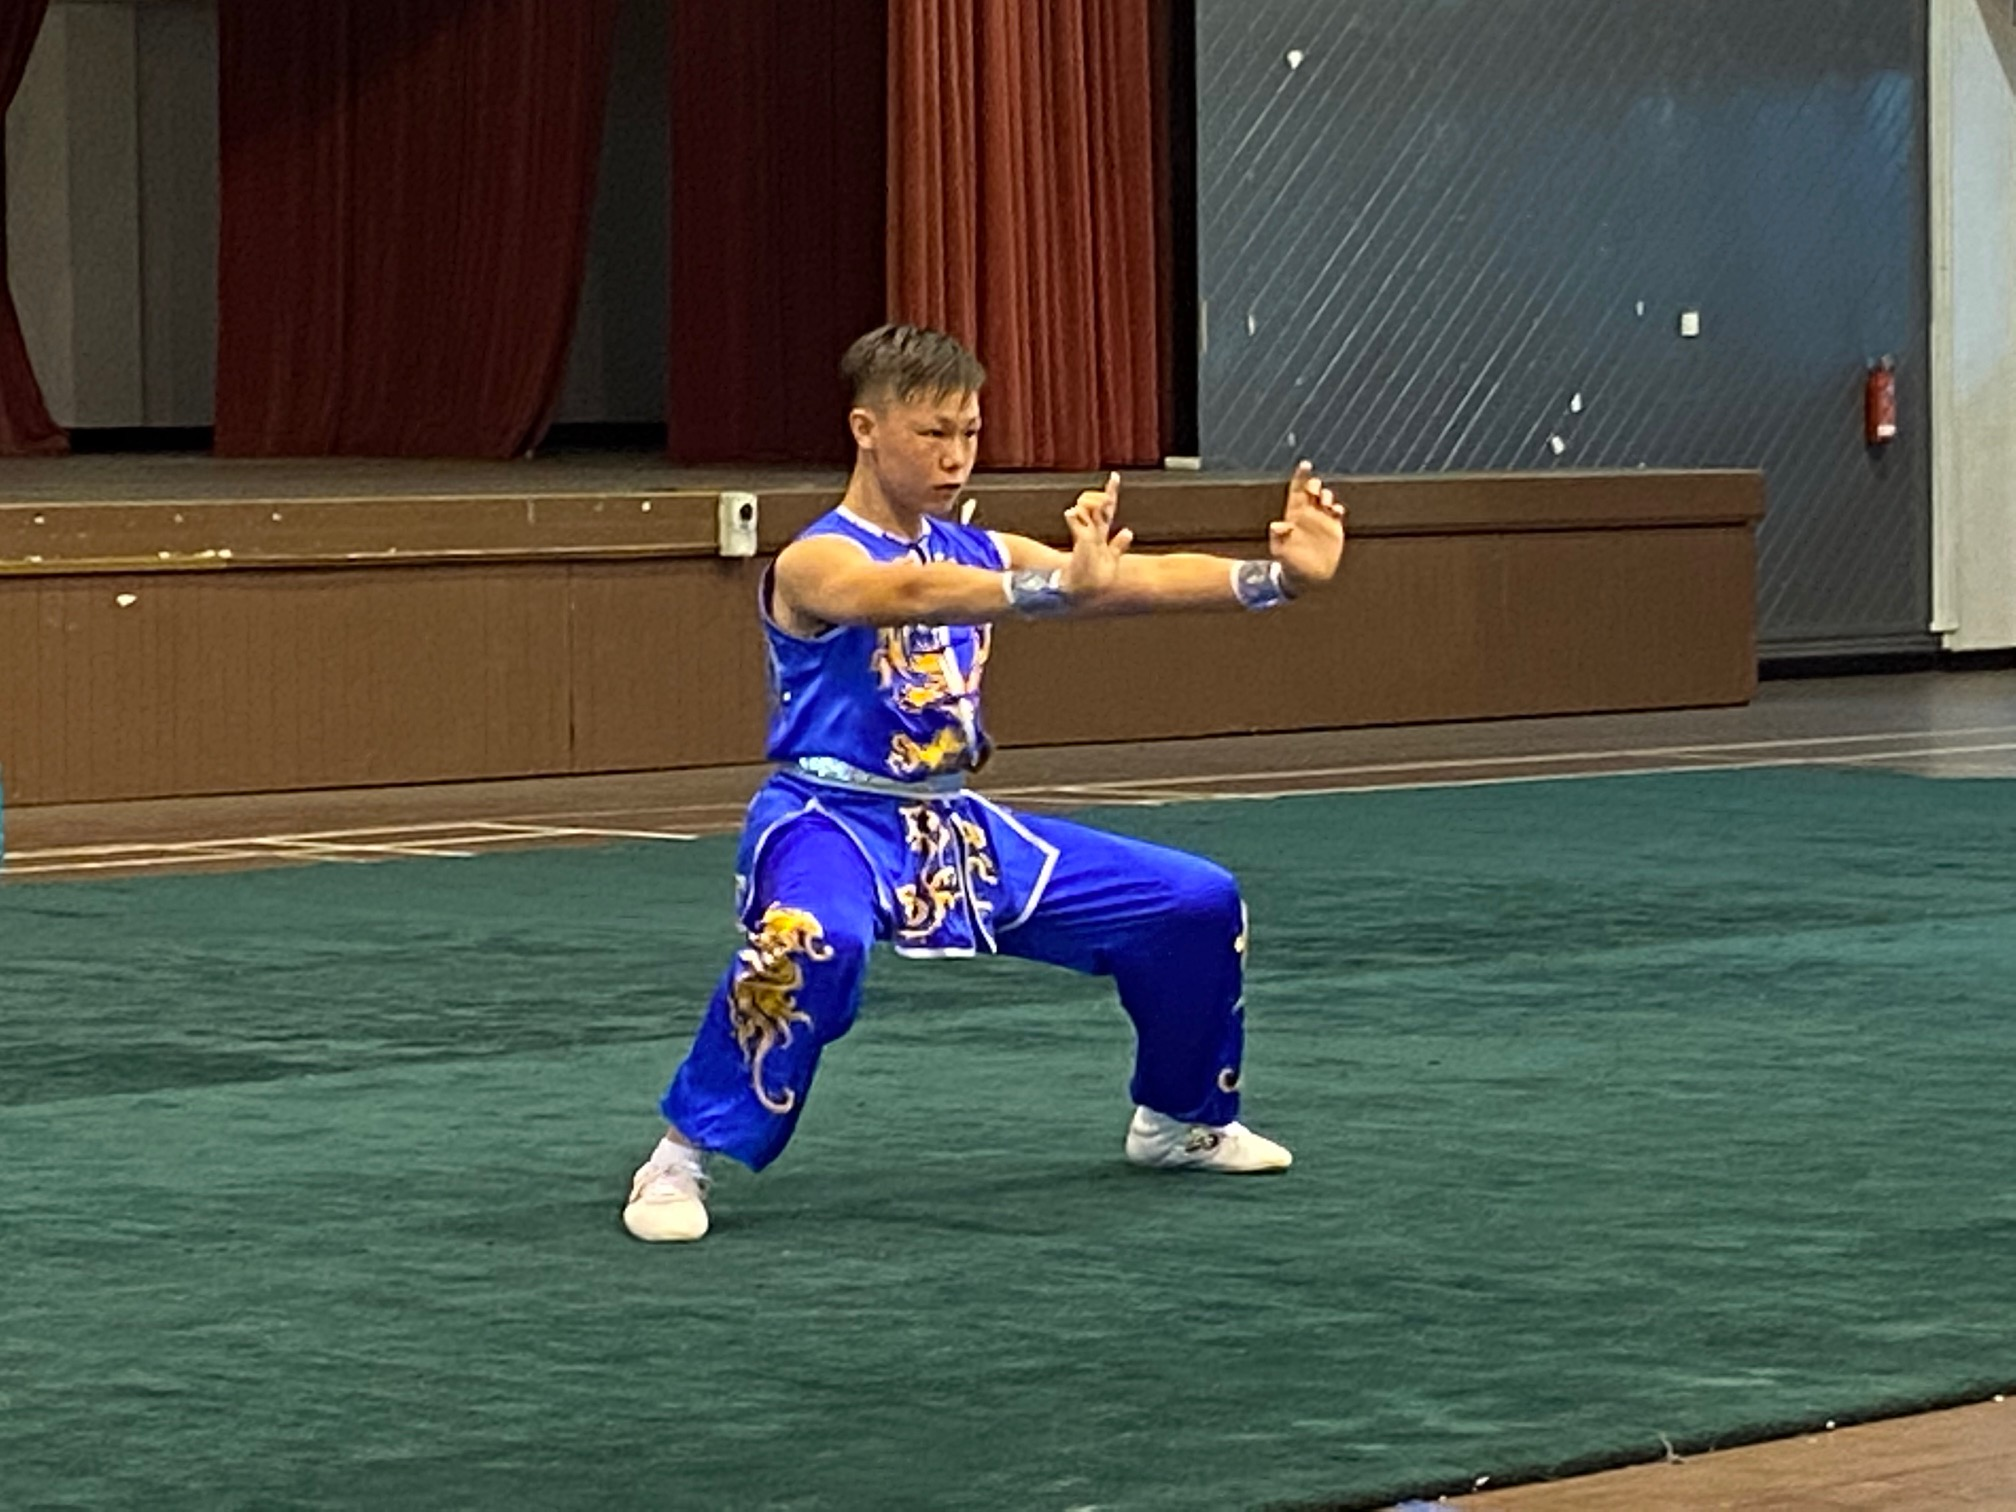 NSG B Div Wushu: Kicks, flips and punches galore as wushu athletes dazzle with their pugilistic prowess